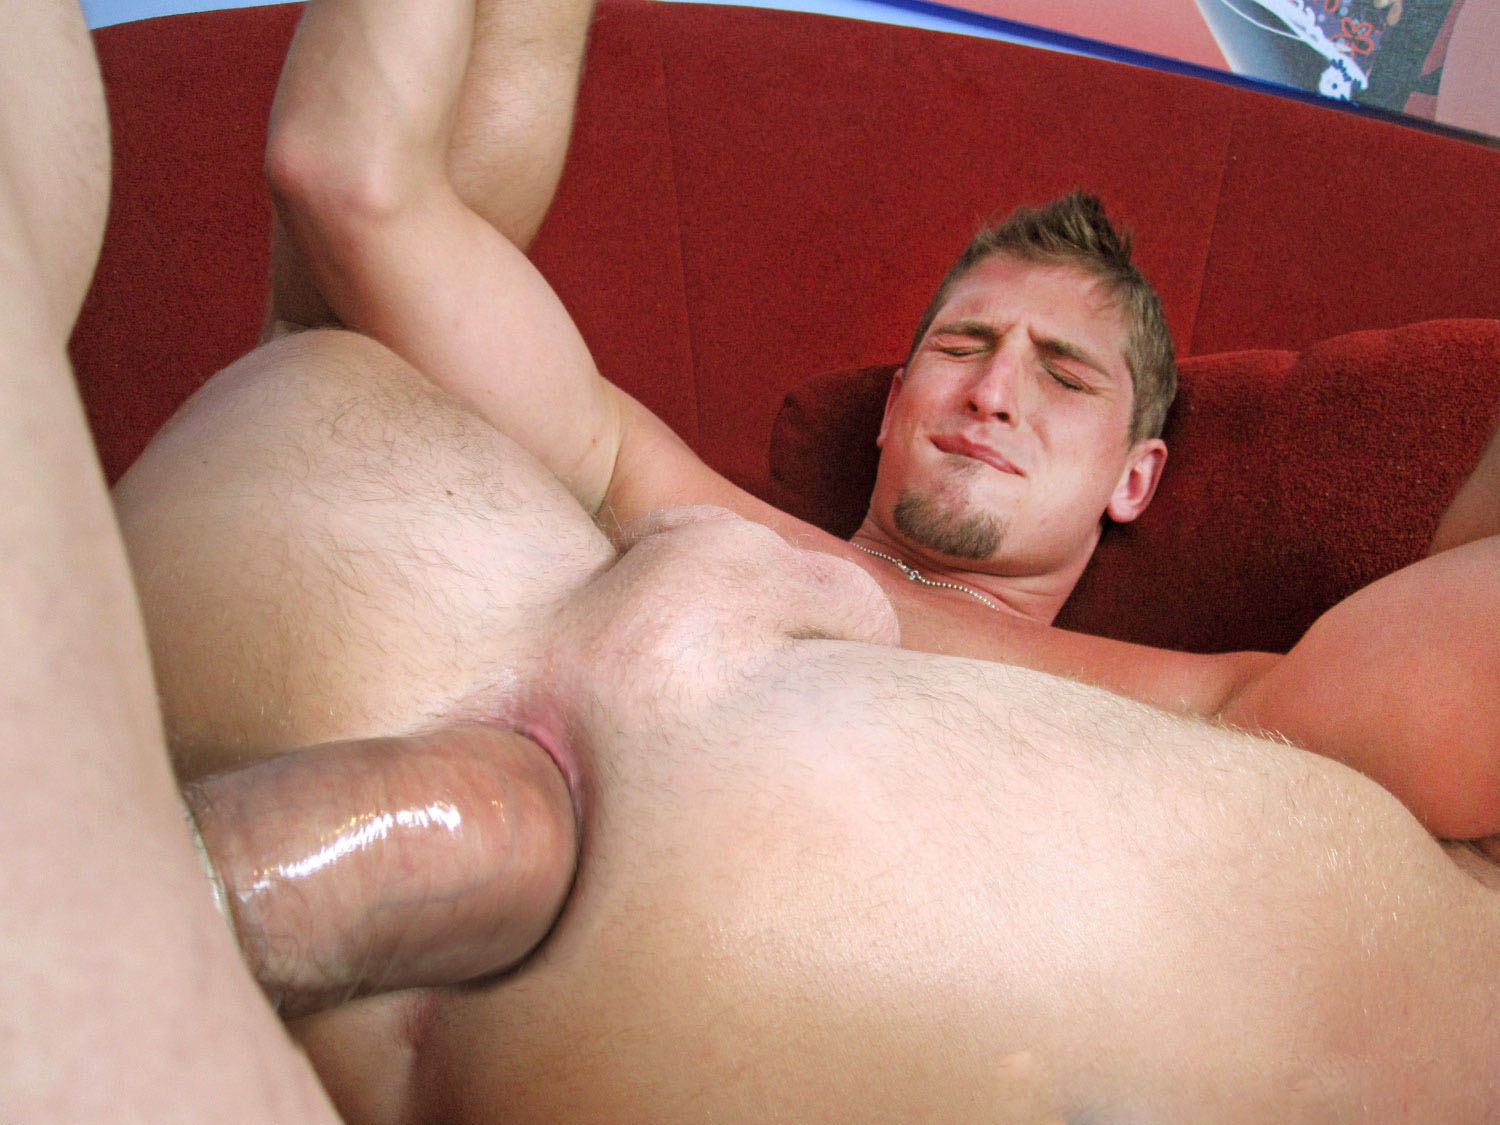 Joy of gay anal sex